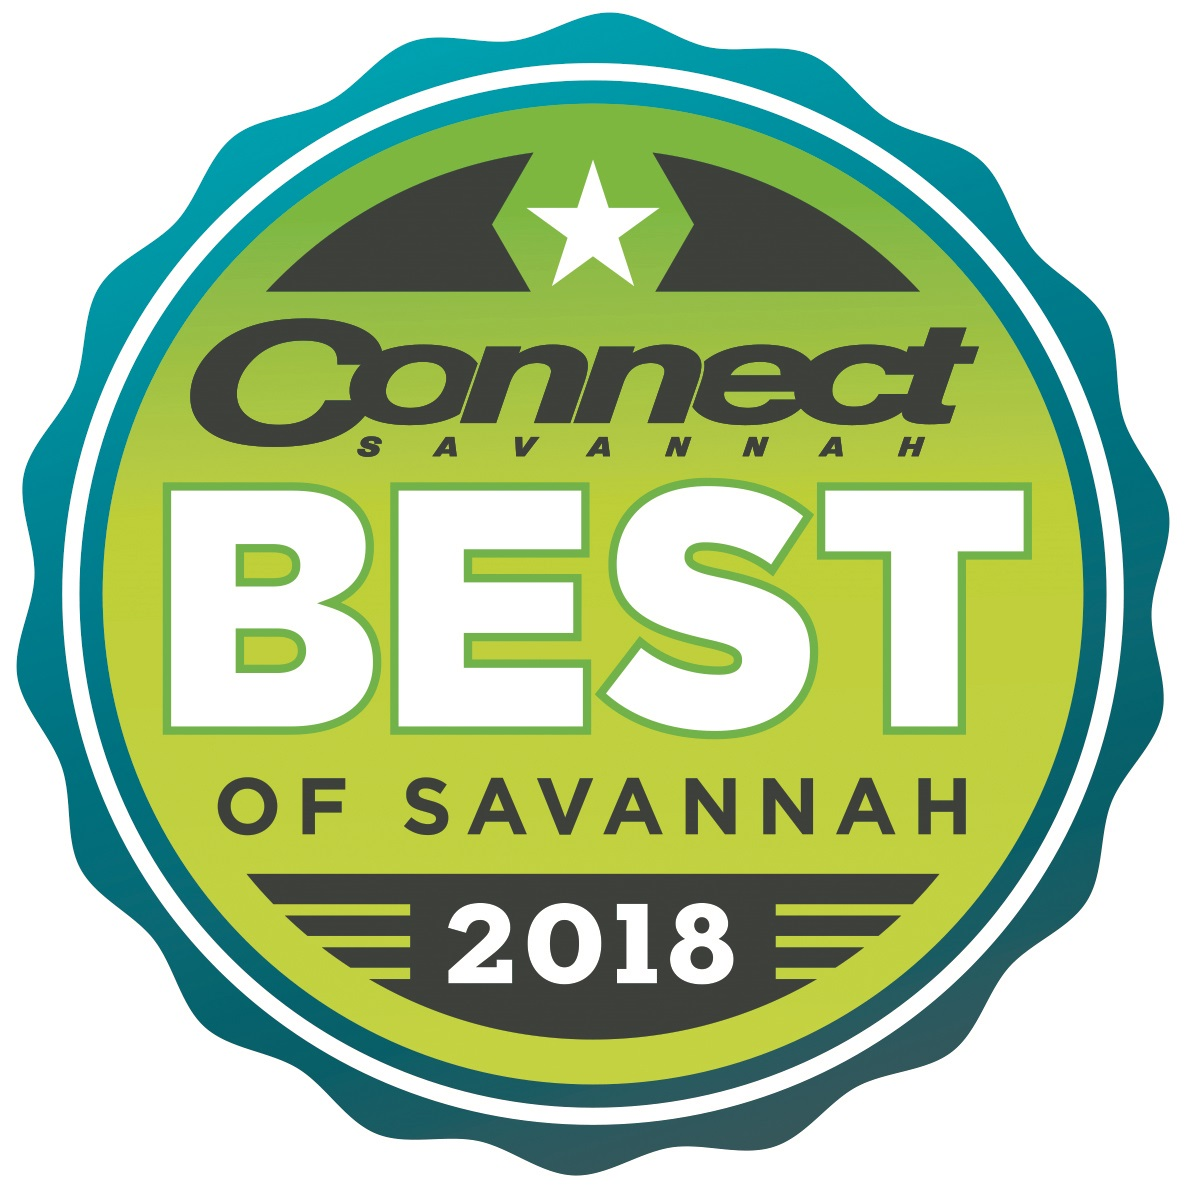 Best of Savannah 2018